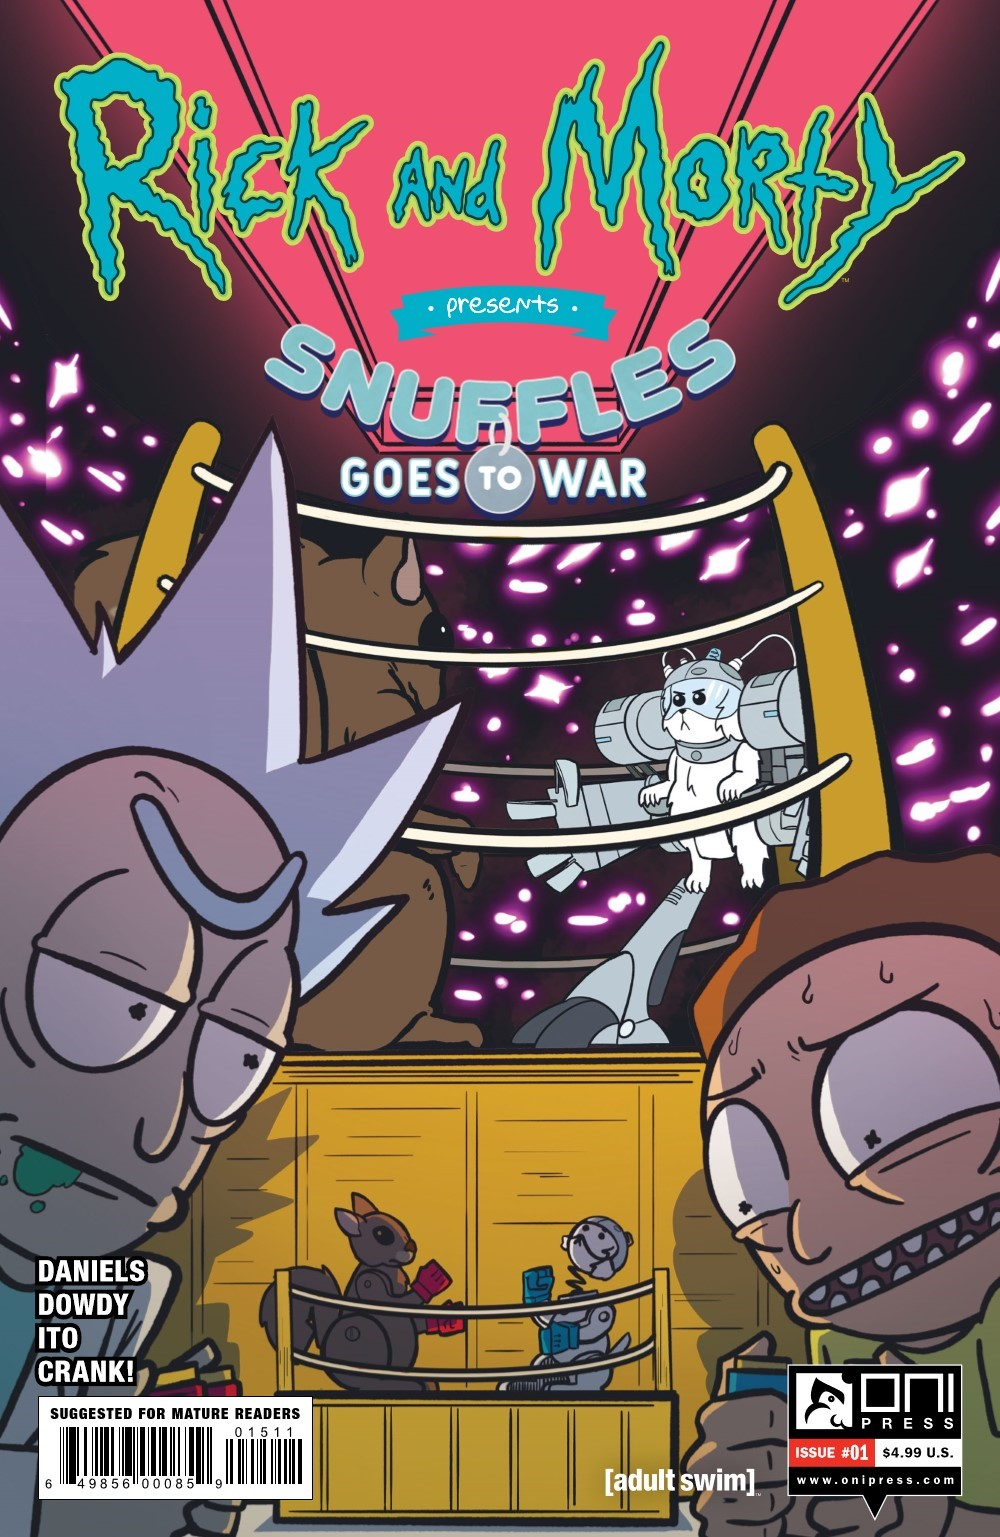 RM-PRES-SNUFFLES-1-REFERENCE-01 ComicList Previews: RICK AND MORTY PRESENTS SNUFFLES GOES TO WAR #1